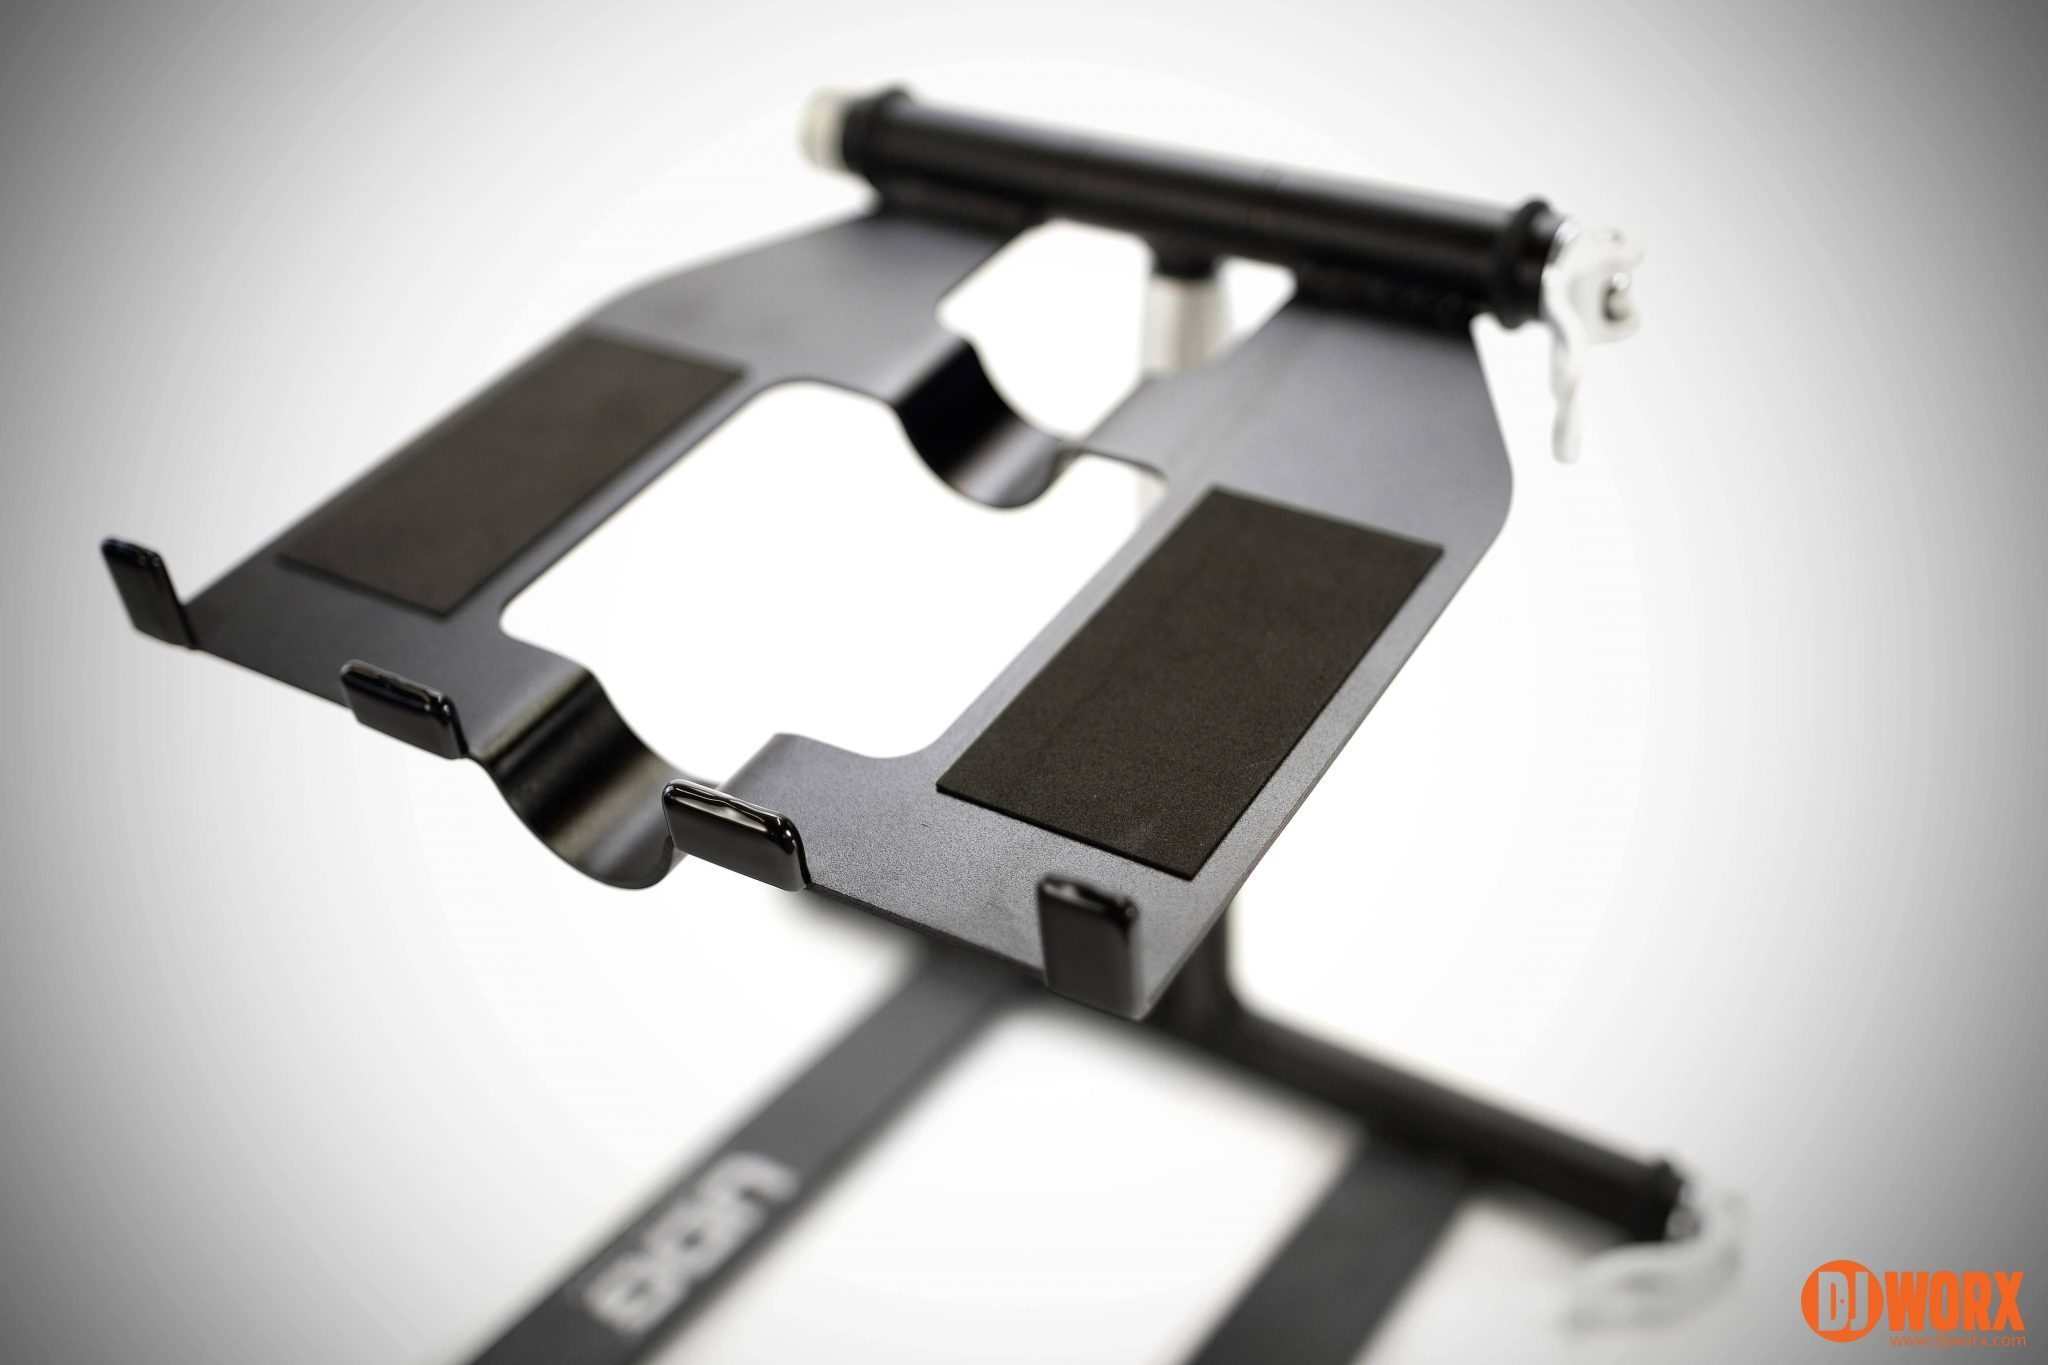 Udg creator dj laptop stand review 17 djworx for Stand createur